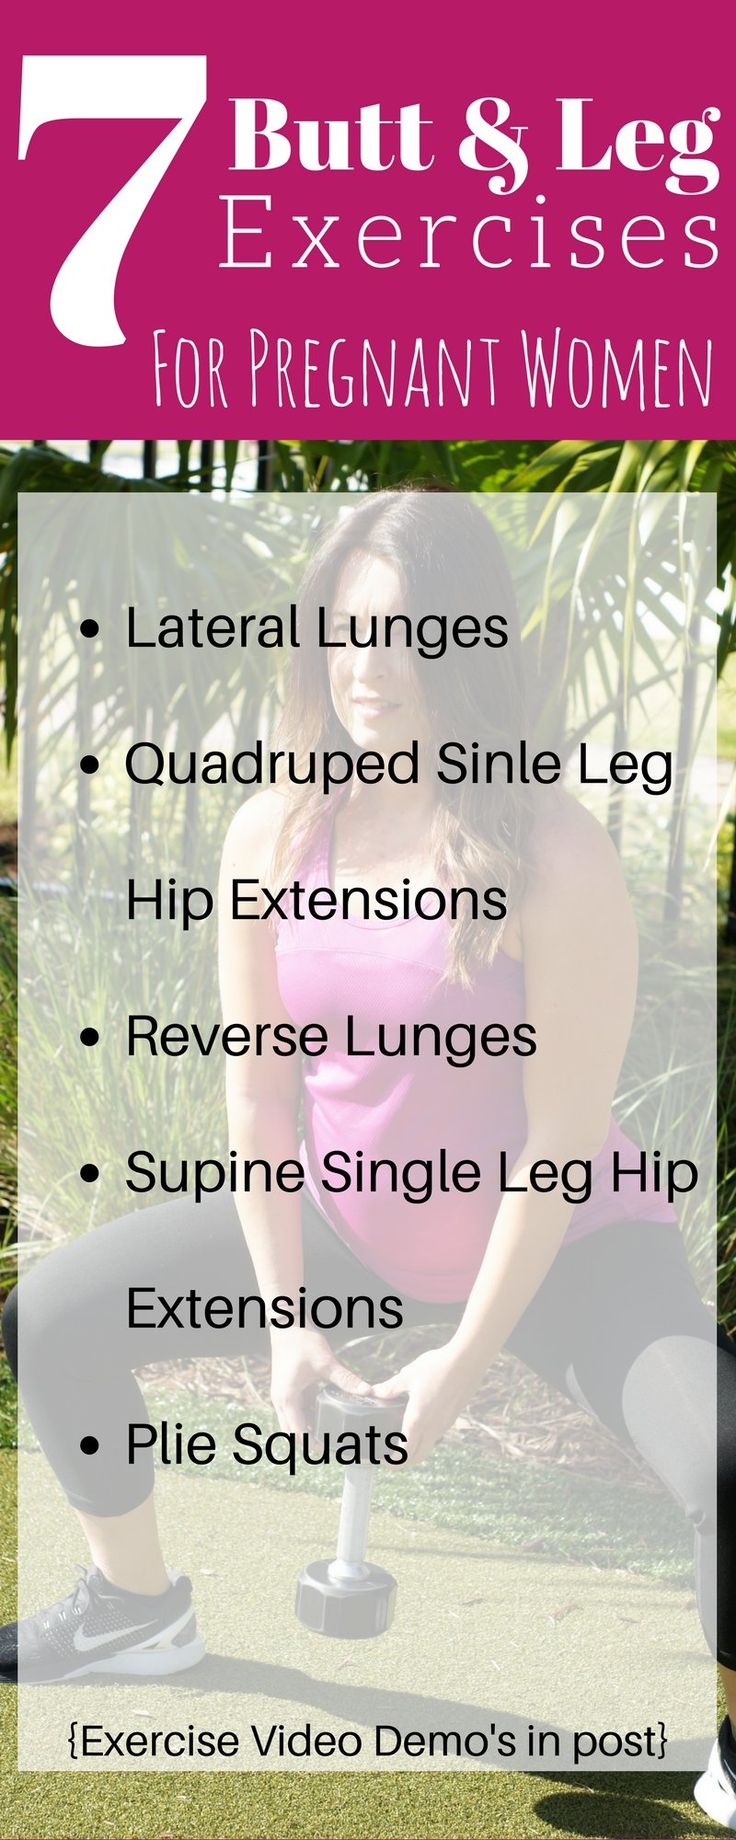 7 butt and leg exercises for pregnant women that are safe and help tighten and tone.